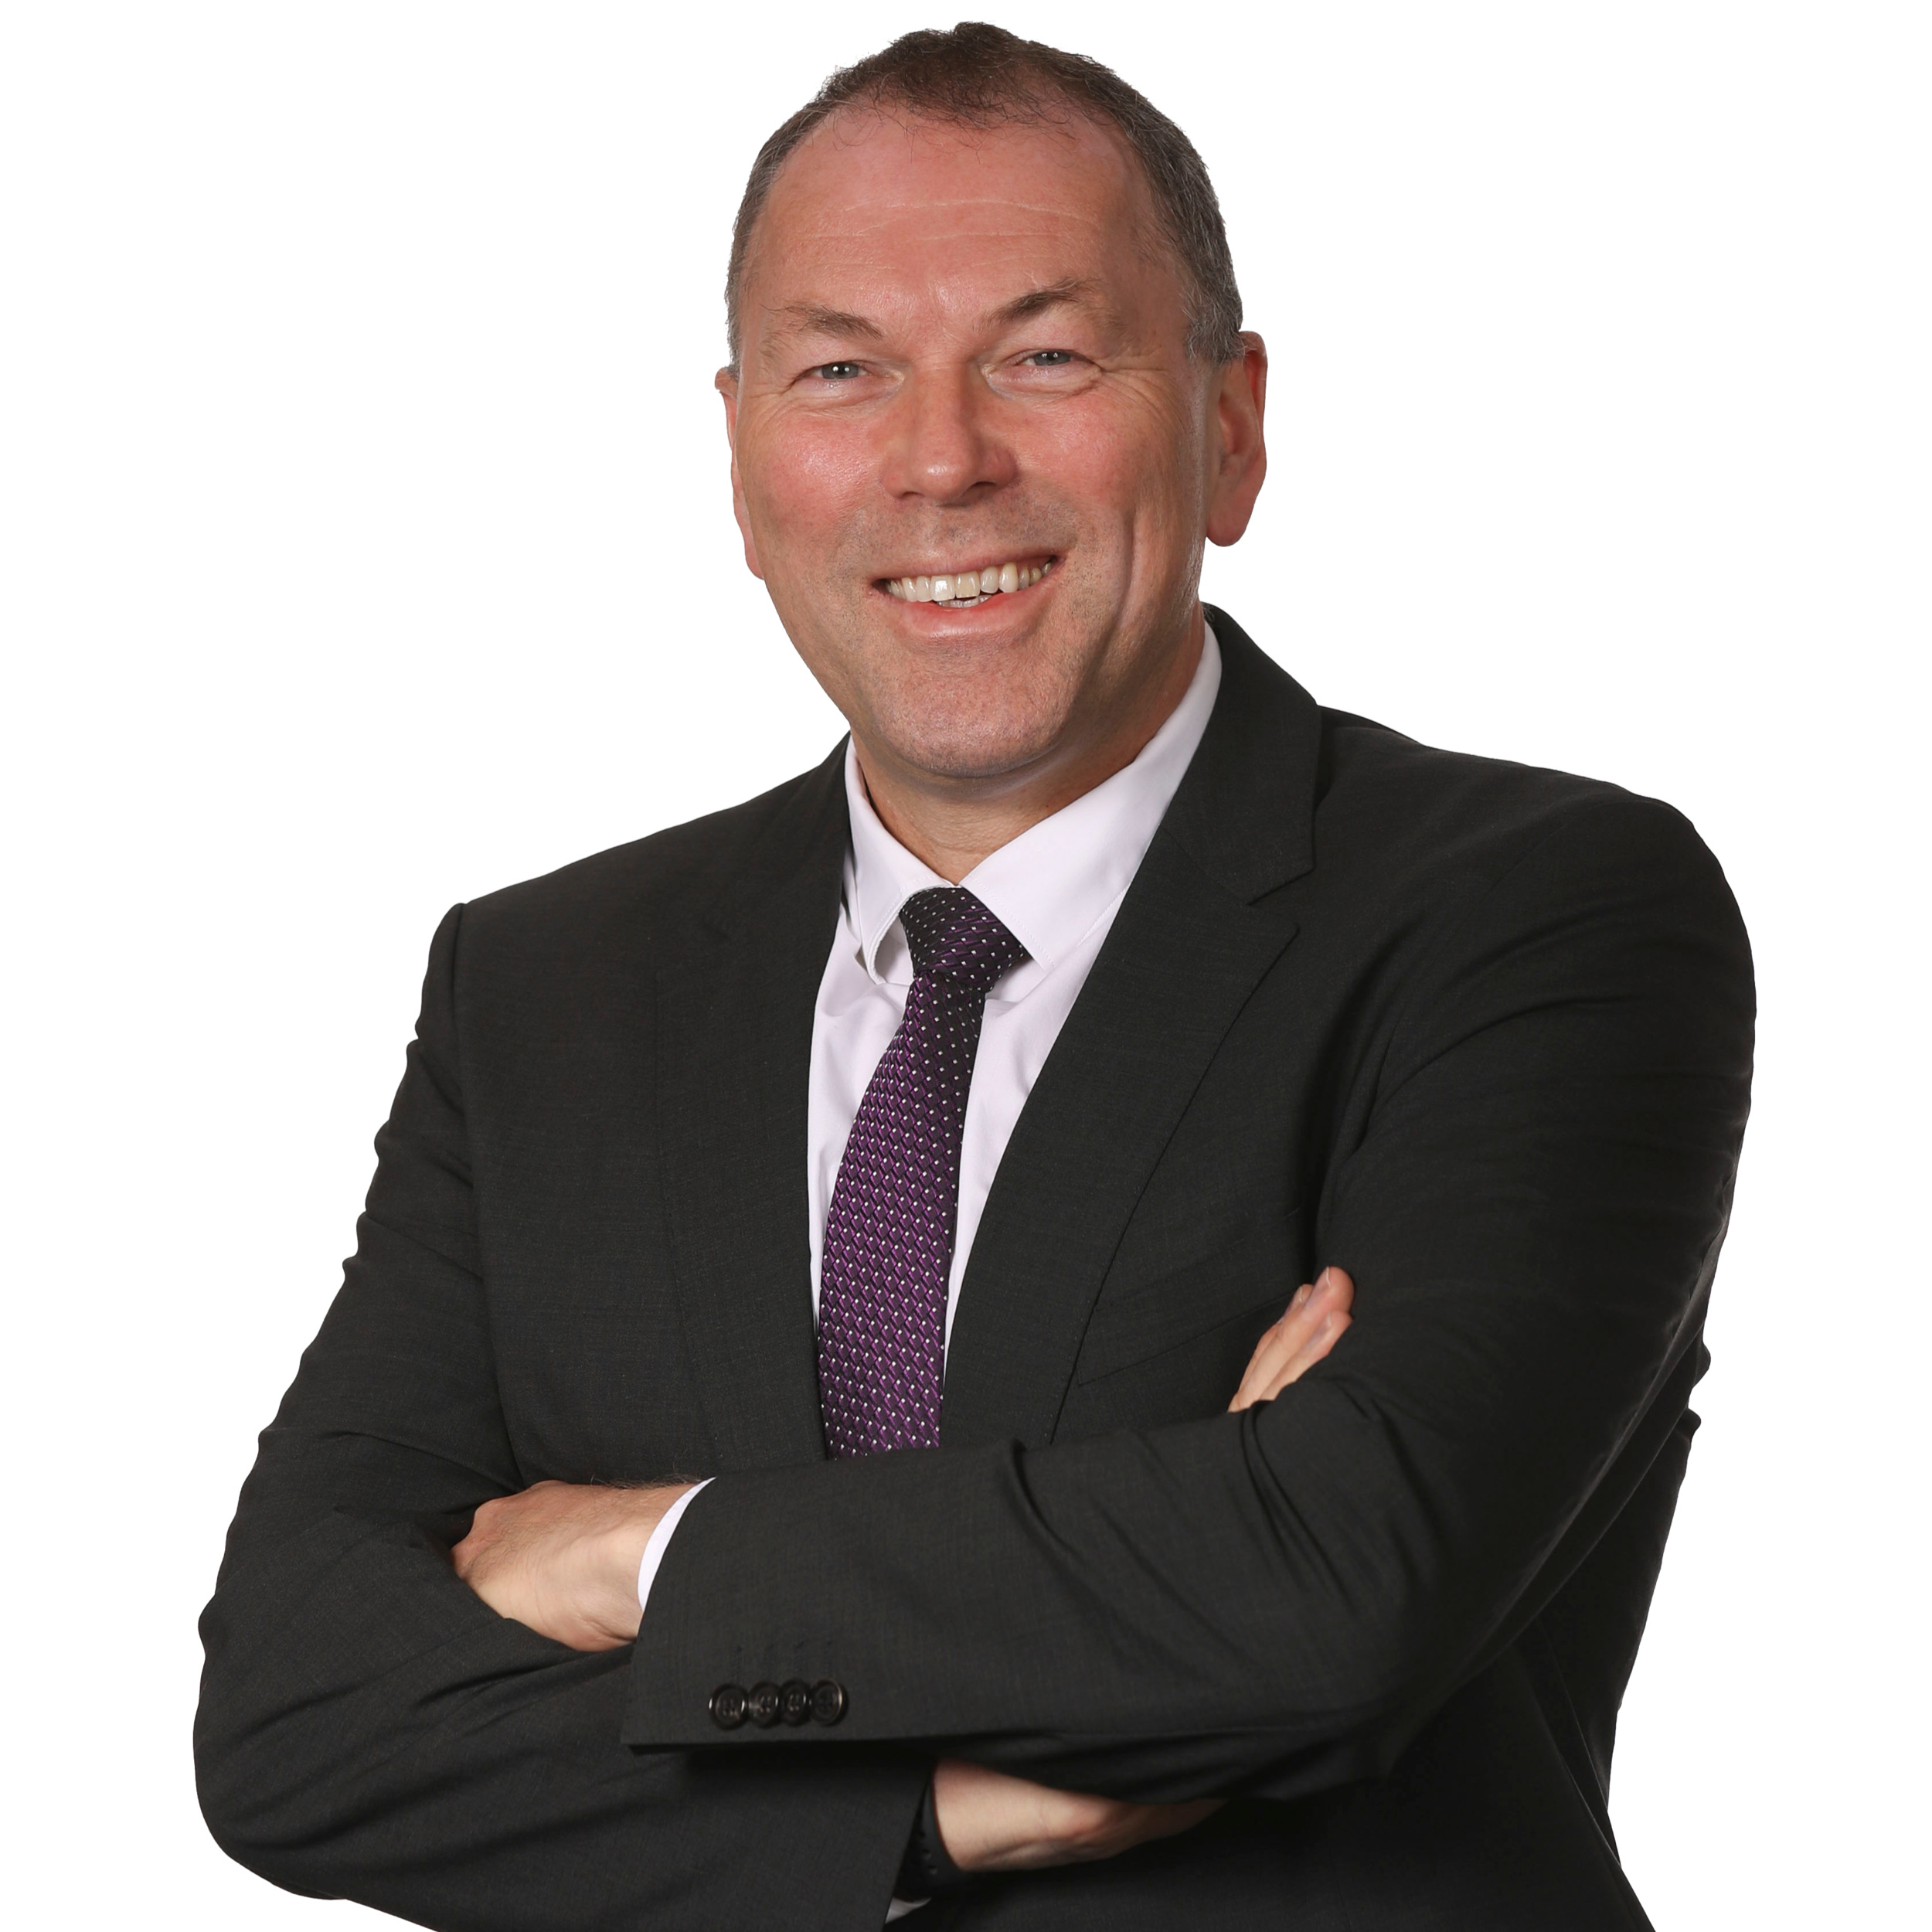 Eric O'Donnell - MANAGING DIRECTOR